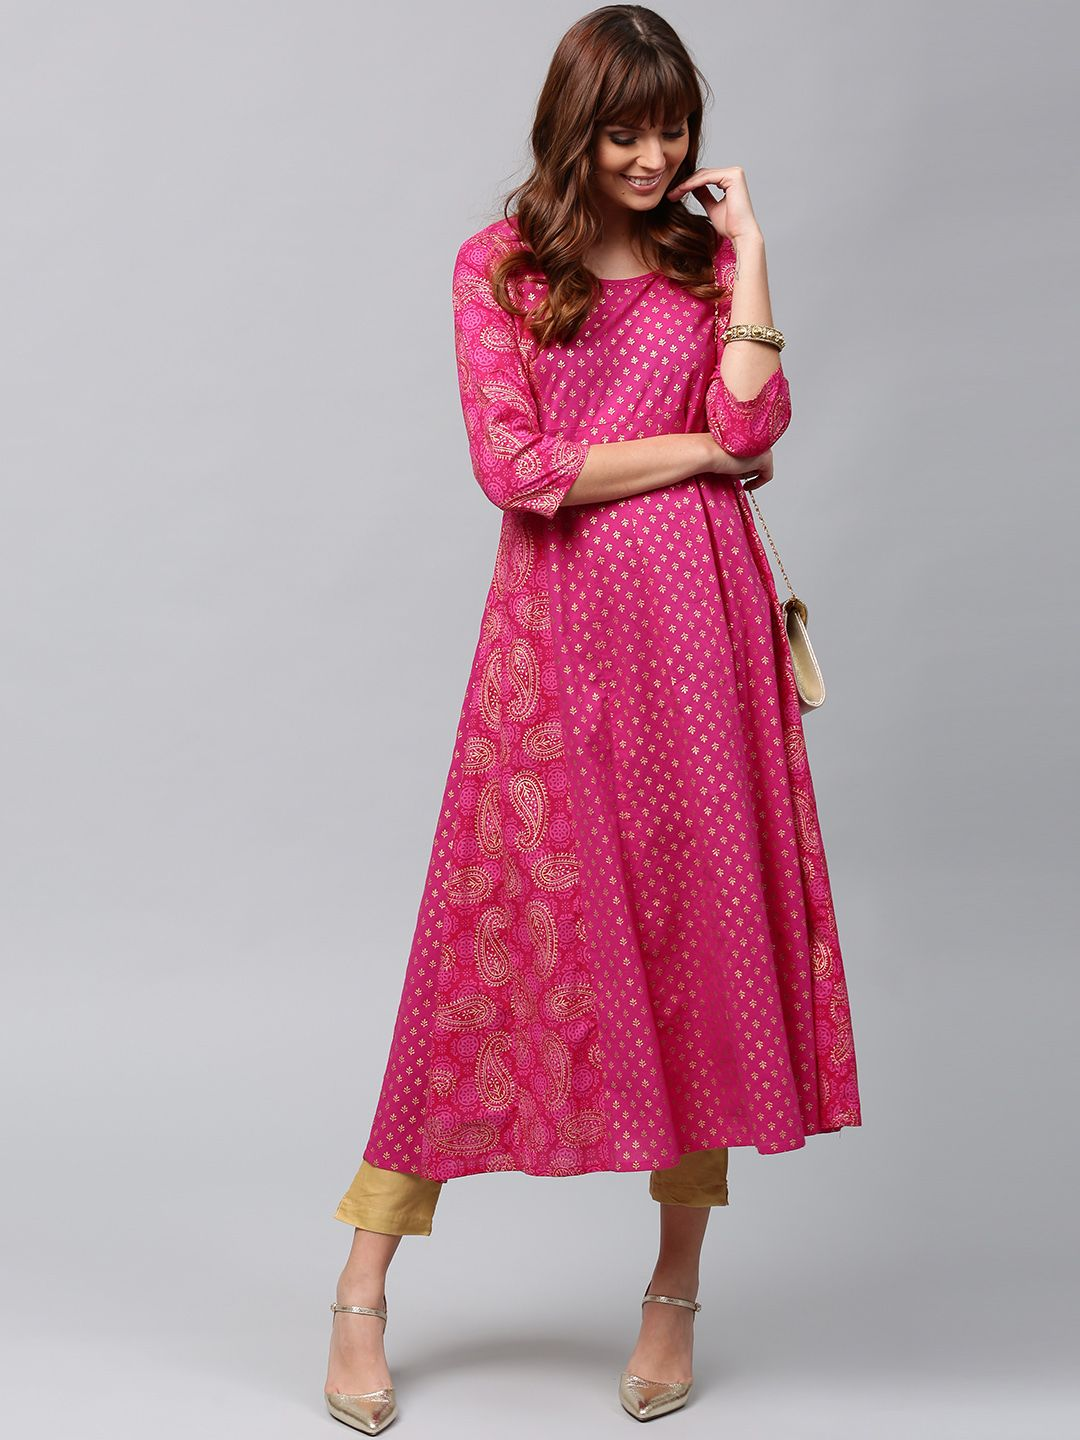 de2a9e4db Buy AKS Women Pink   Gold Toned Printed Anarkali Kurta - - Apparel for  Women from AKS at Rs. 999